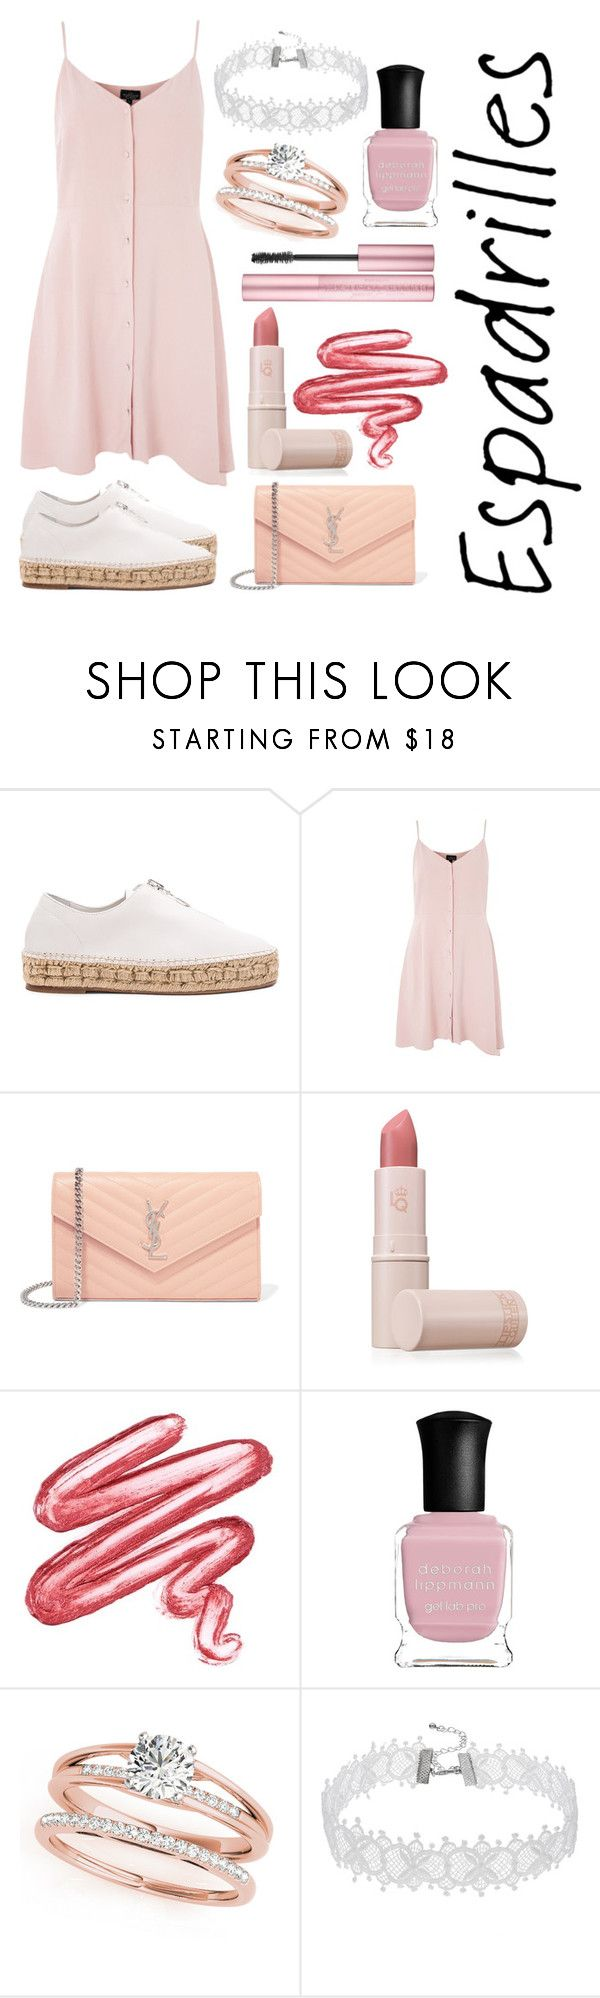 """#espadrilles (Contest Submission)"" by fashionbyginny ❤ liked on Polyvore featuring Alexander Wang, Topshop, Yves Saint Laurent, Lipstick Queen, Lime Crime and Deborah Lippmann"